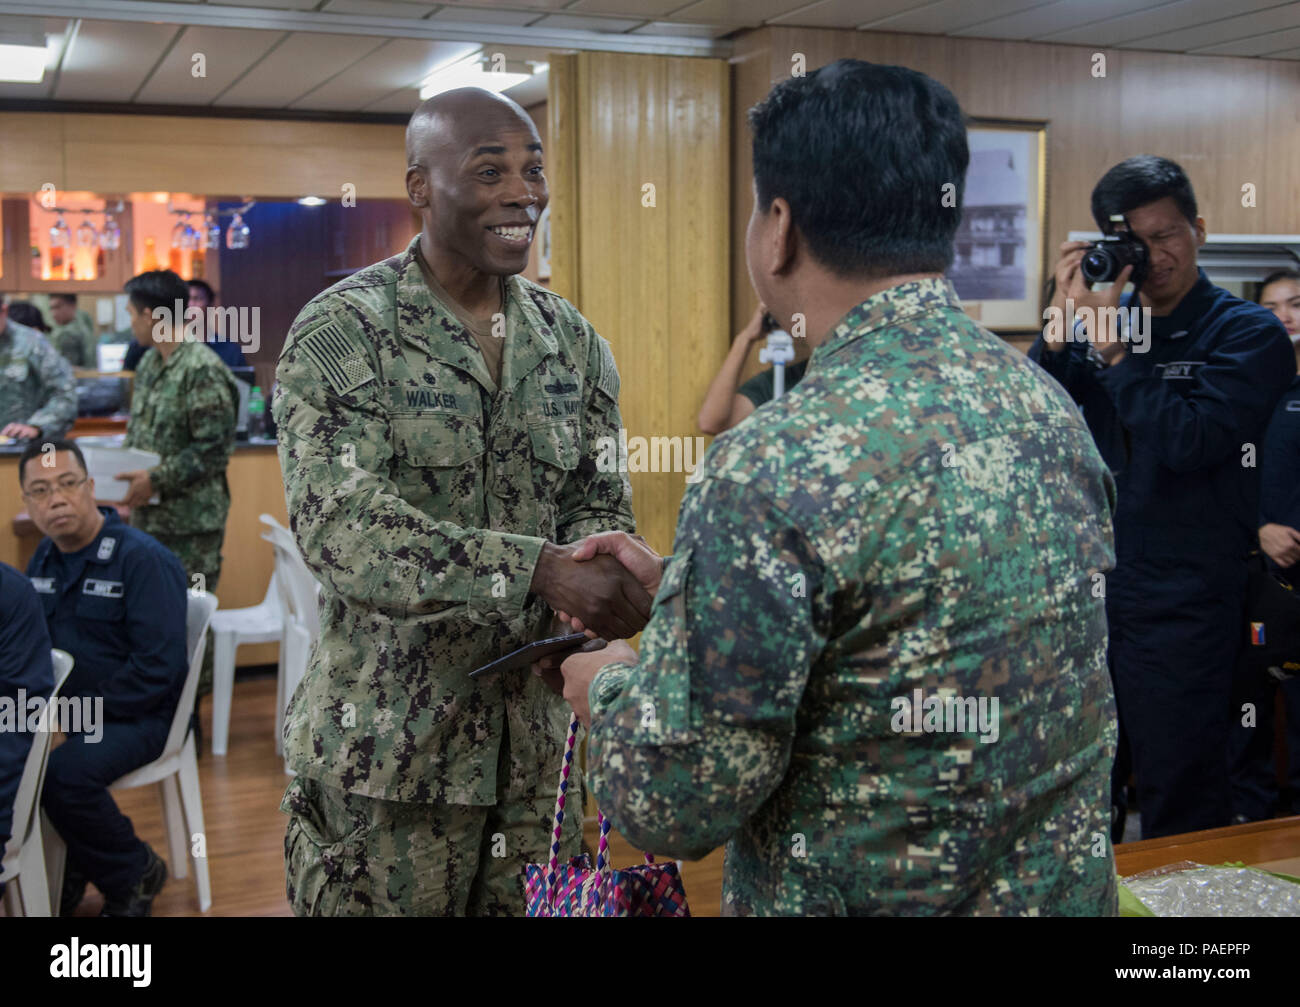 180714-N-OU129-180 SAN FERNANDO CITY, Philippines (July 14, 2018) Capt. Lex Walker, Commodore, Destroyer Squadron 7, exchanges gifts with Philippine Navy Commodore Nichols Driz, Commander, Naval Forces Northern Luzon, at the closing ceremony of Maritime Training Activity (MTA) Sama Sama 2018 aboard Philippine Navy ship BRP Tarlac (LD-601). The week-long engagement focuses on the full spectrum of naval capabilities and is designed to strengthen the close partnership between both navies while cooperatively ensuring maritime security, stability and prosperity. (U.S. Navy photo by Mass Communicati Stock Photo